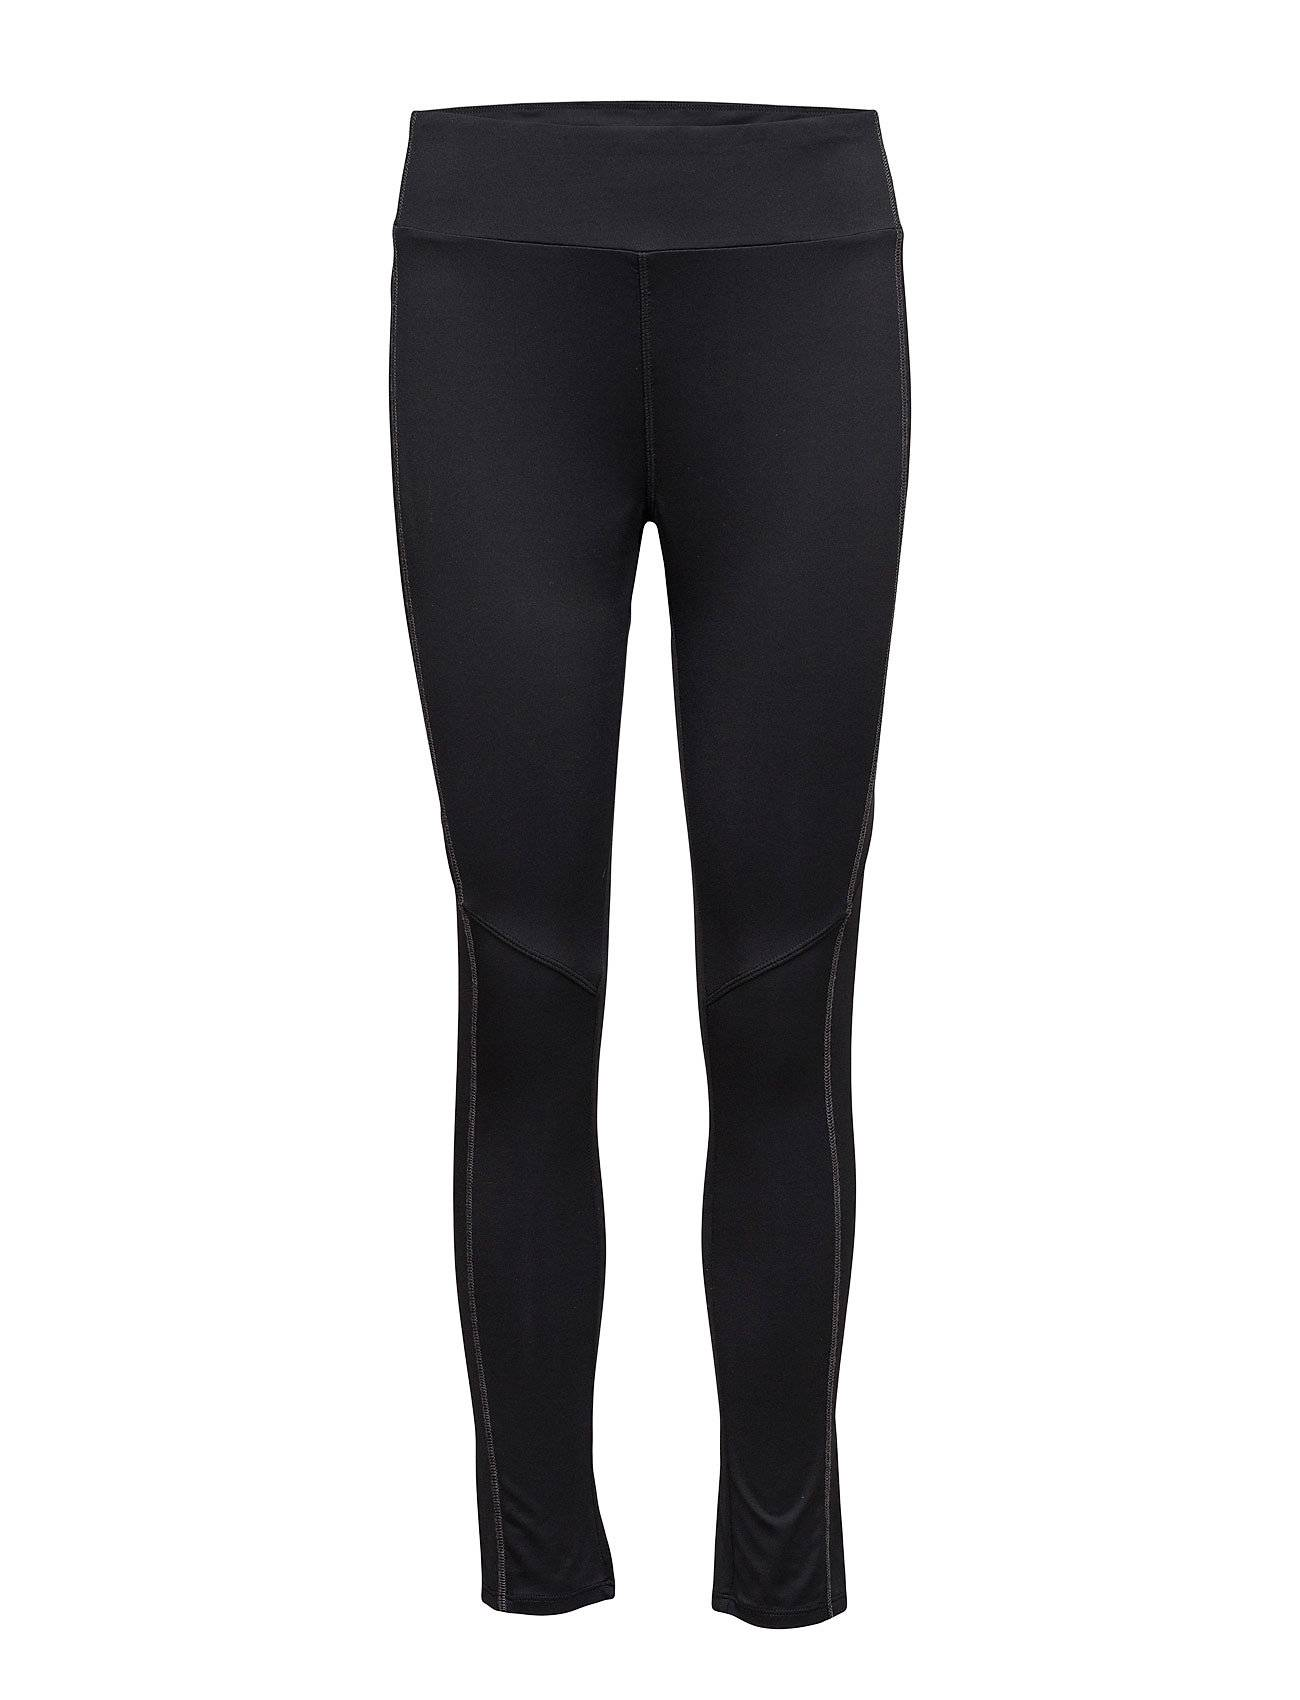 Twist & Tango Be Running Tights